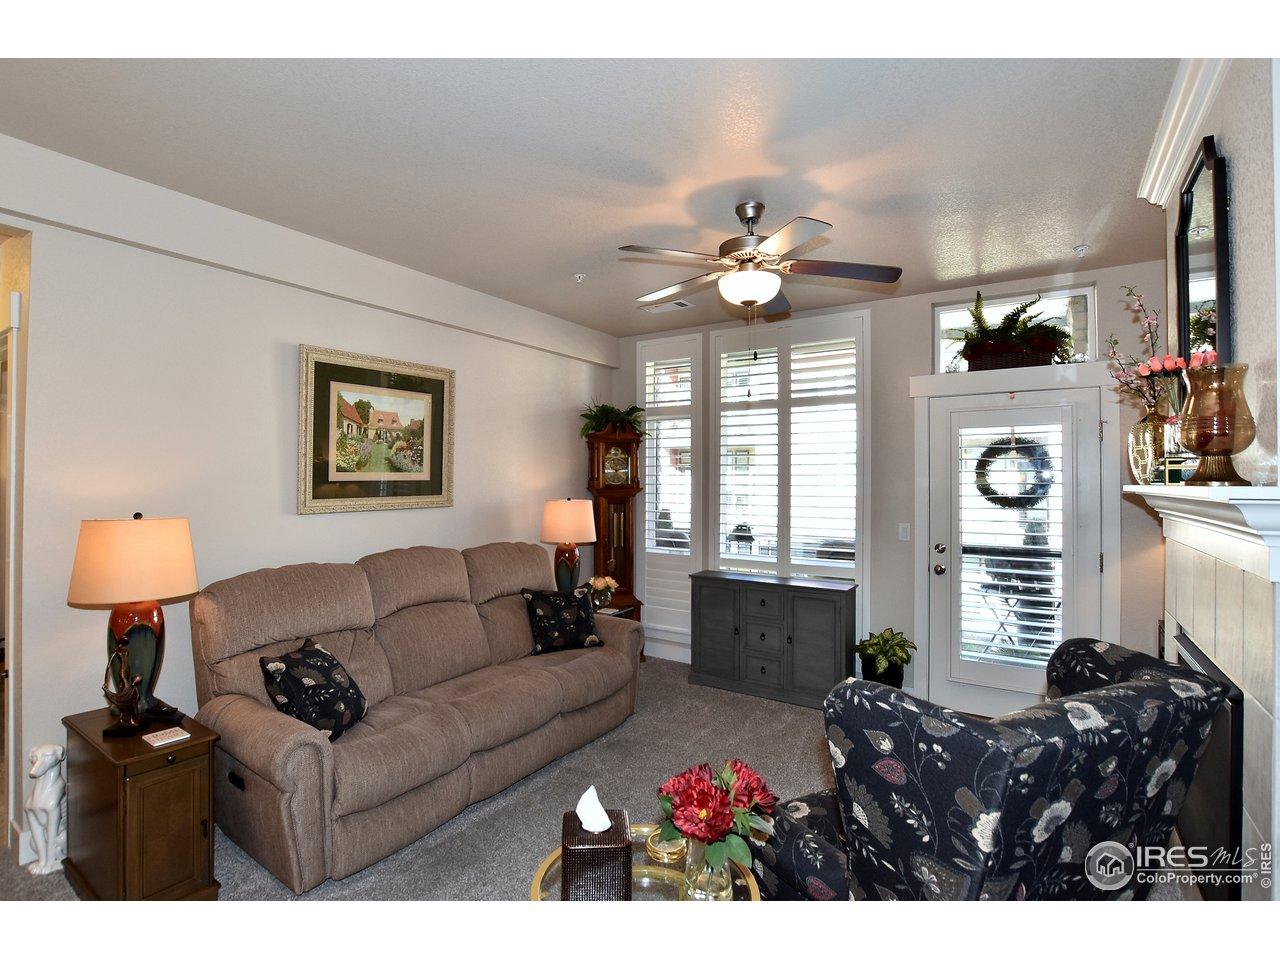 Spacious living area w/ door and storm door out to balcony to let loads of light in